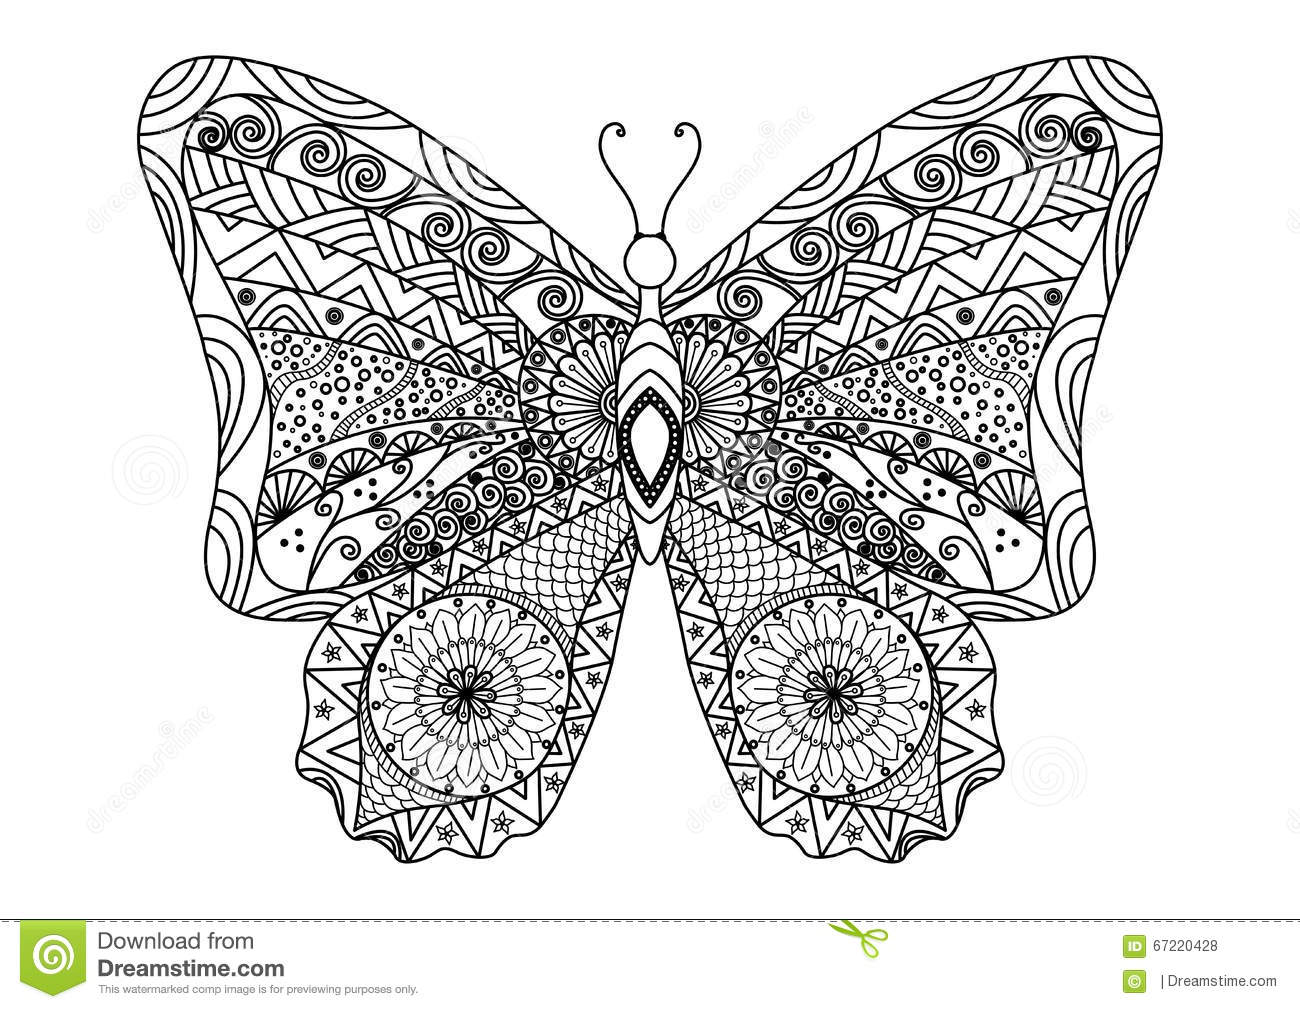 Style Tiré Par La Main De Zentangle De Papillon Pour Livre De Coloriage Illustration De Vecteur